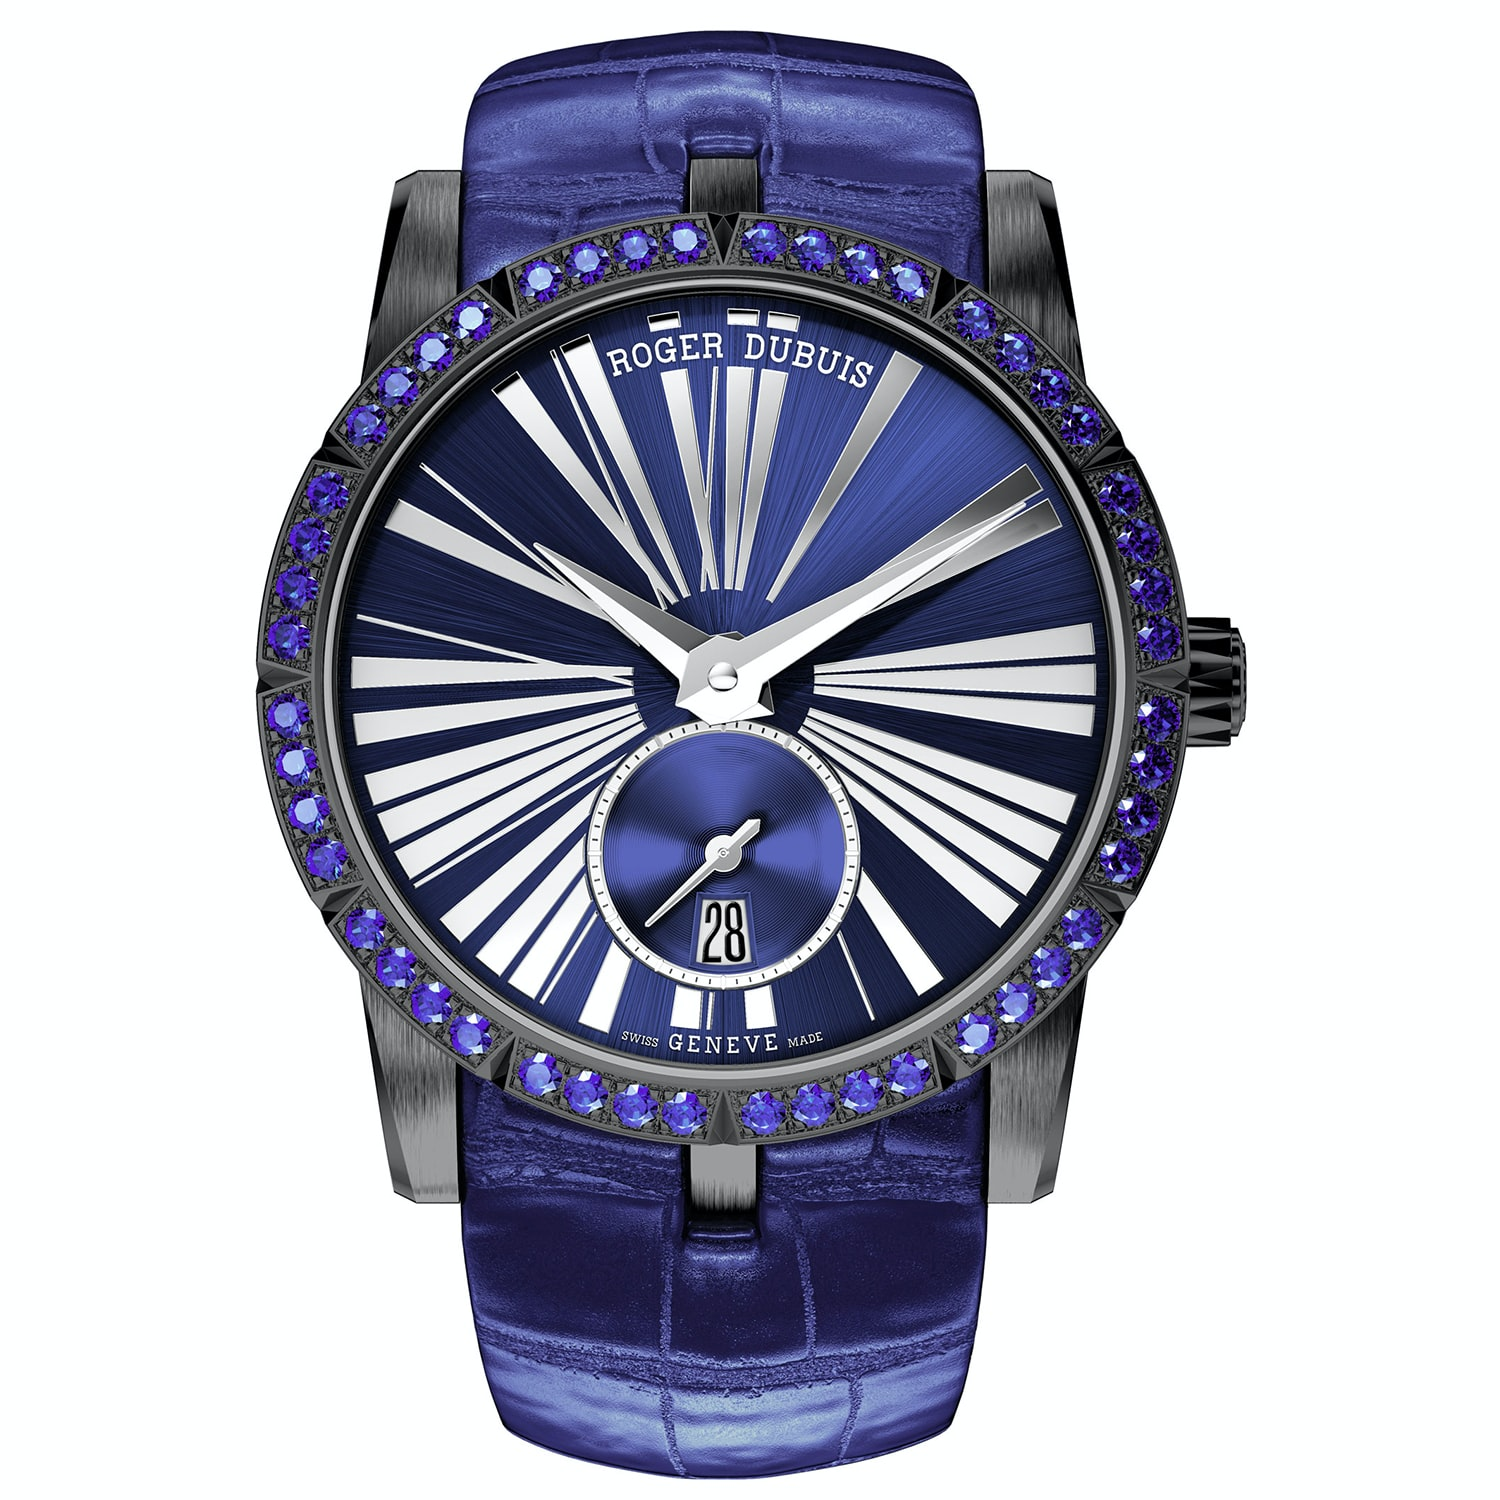 Roger Dubuis Excalibur 36. Introducing: The Roger Dubuis Excalibur Quatuor Cobalt MicroMelt (And Two Other New Excalibur Watches) Introducing: The Roger Dubuis Excalibur Quatuor Cobalt MicroMelt (And Two Other New Excalibur Watches) 3b